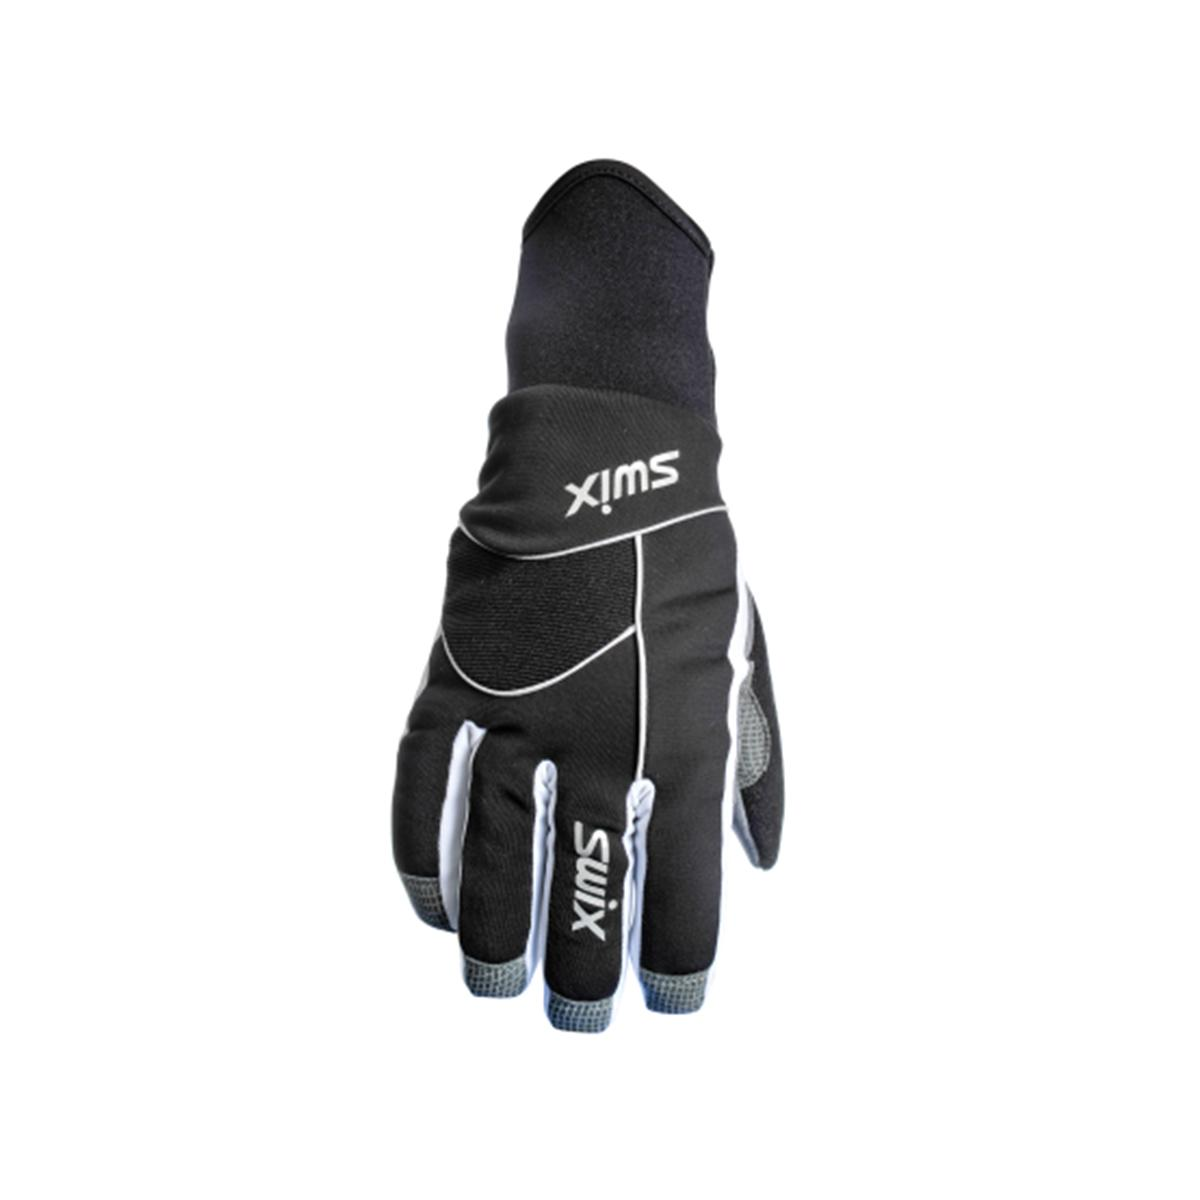 Swix Men's Star XC 2.0 Glove in Black